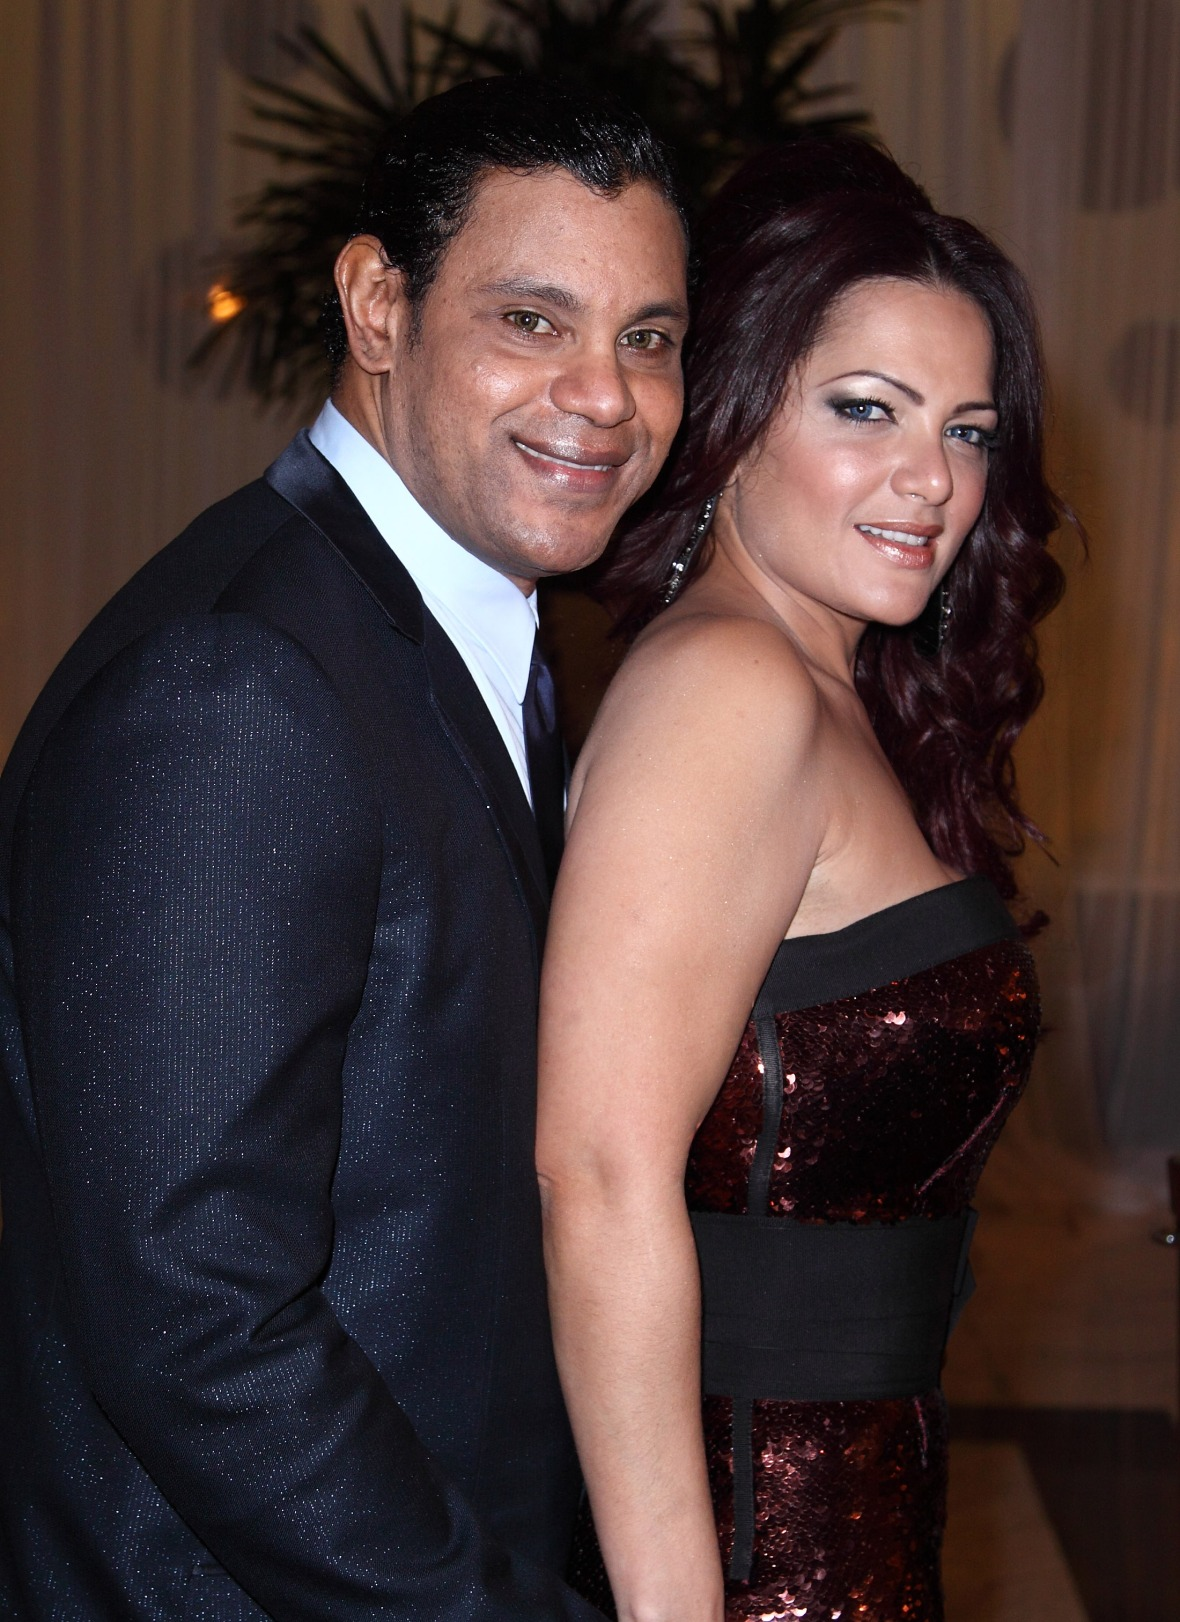 sammy sosa and wife sonia